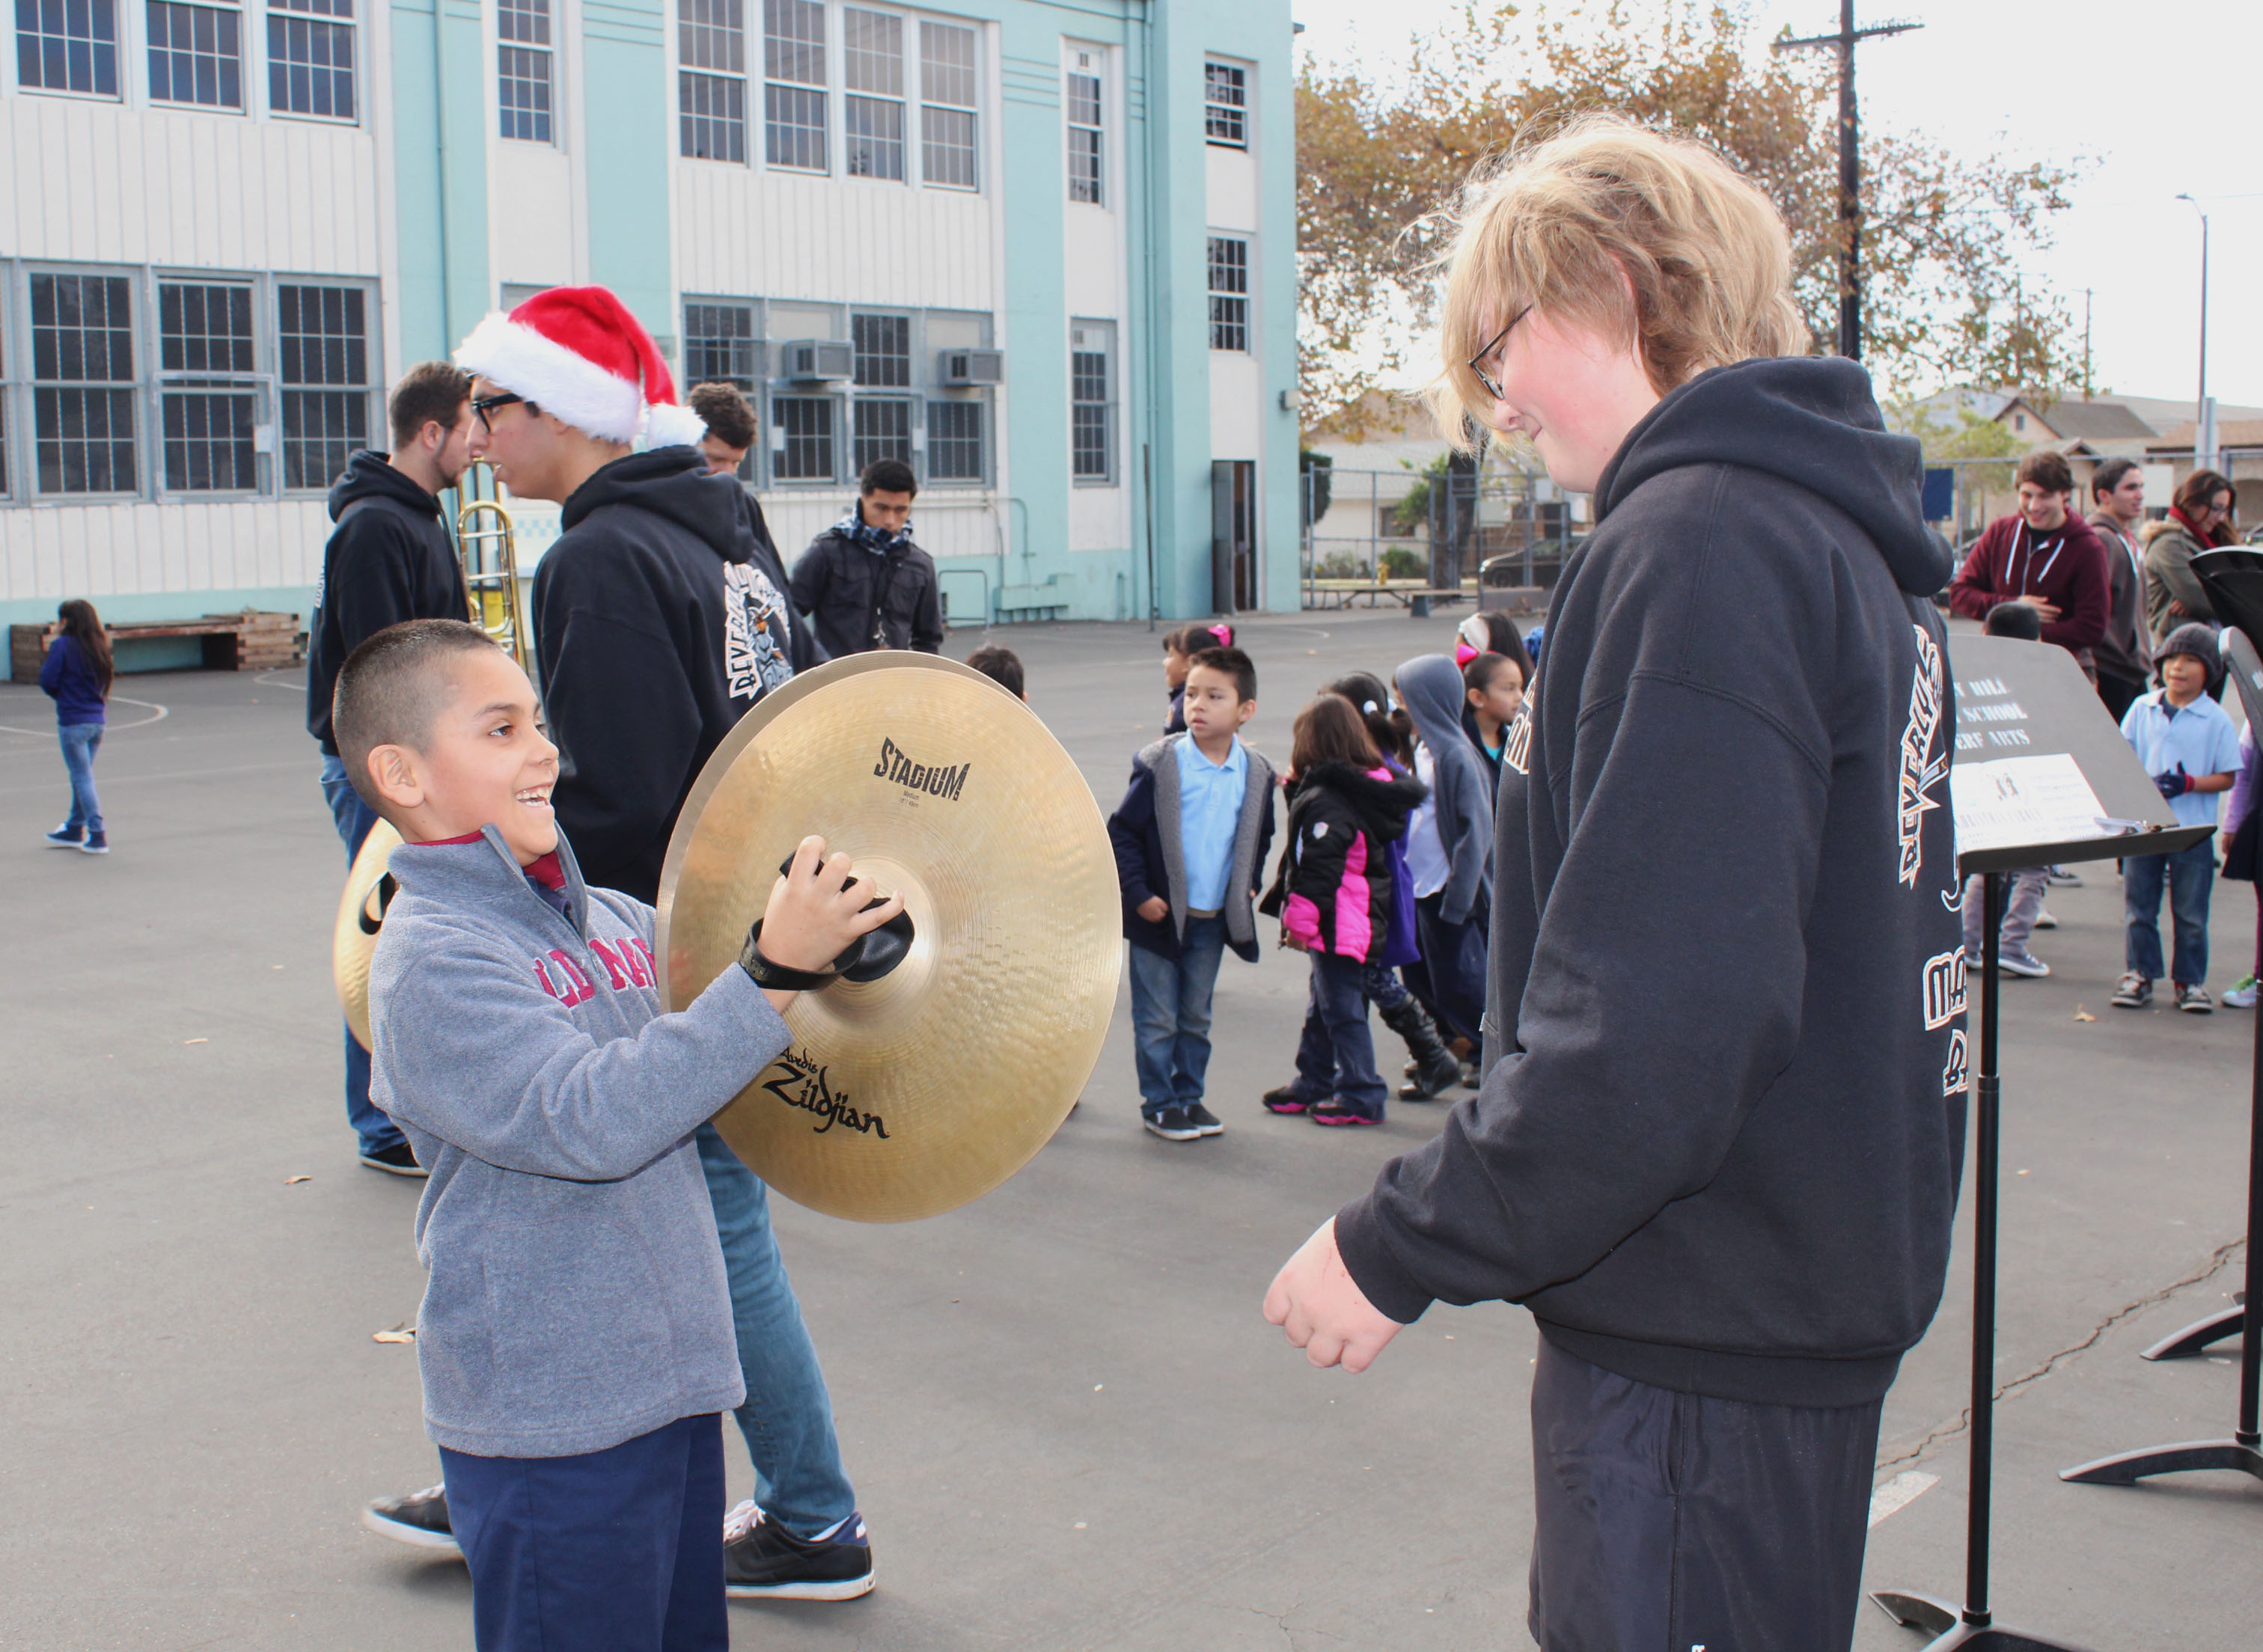 The marching band performed for students during recess, and some of the Albion kids had the opportunity to test out instruments.